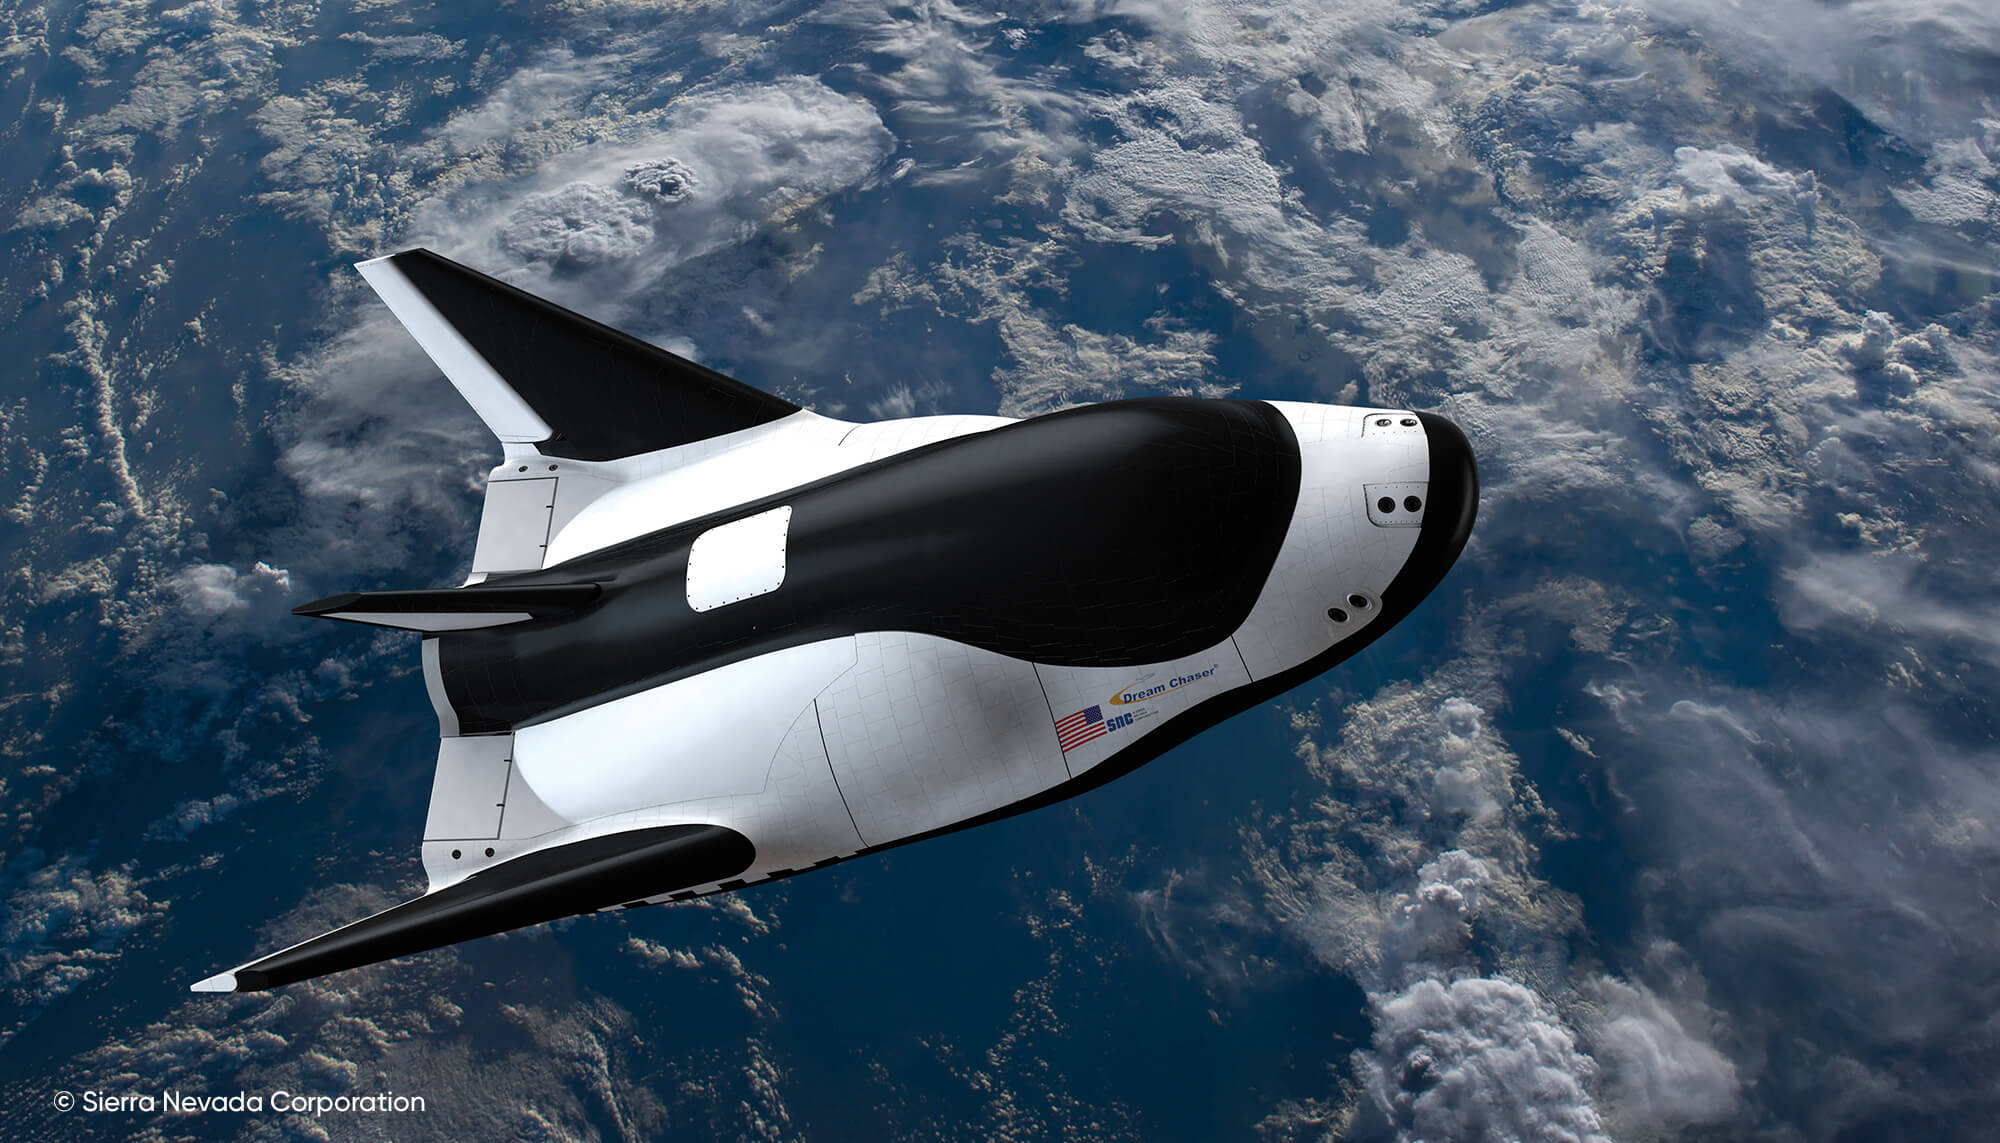 Dream Chaser space plane from Sierra Nevada Corporation